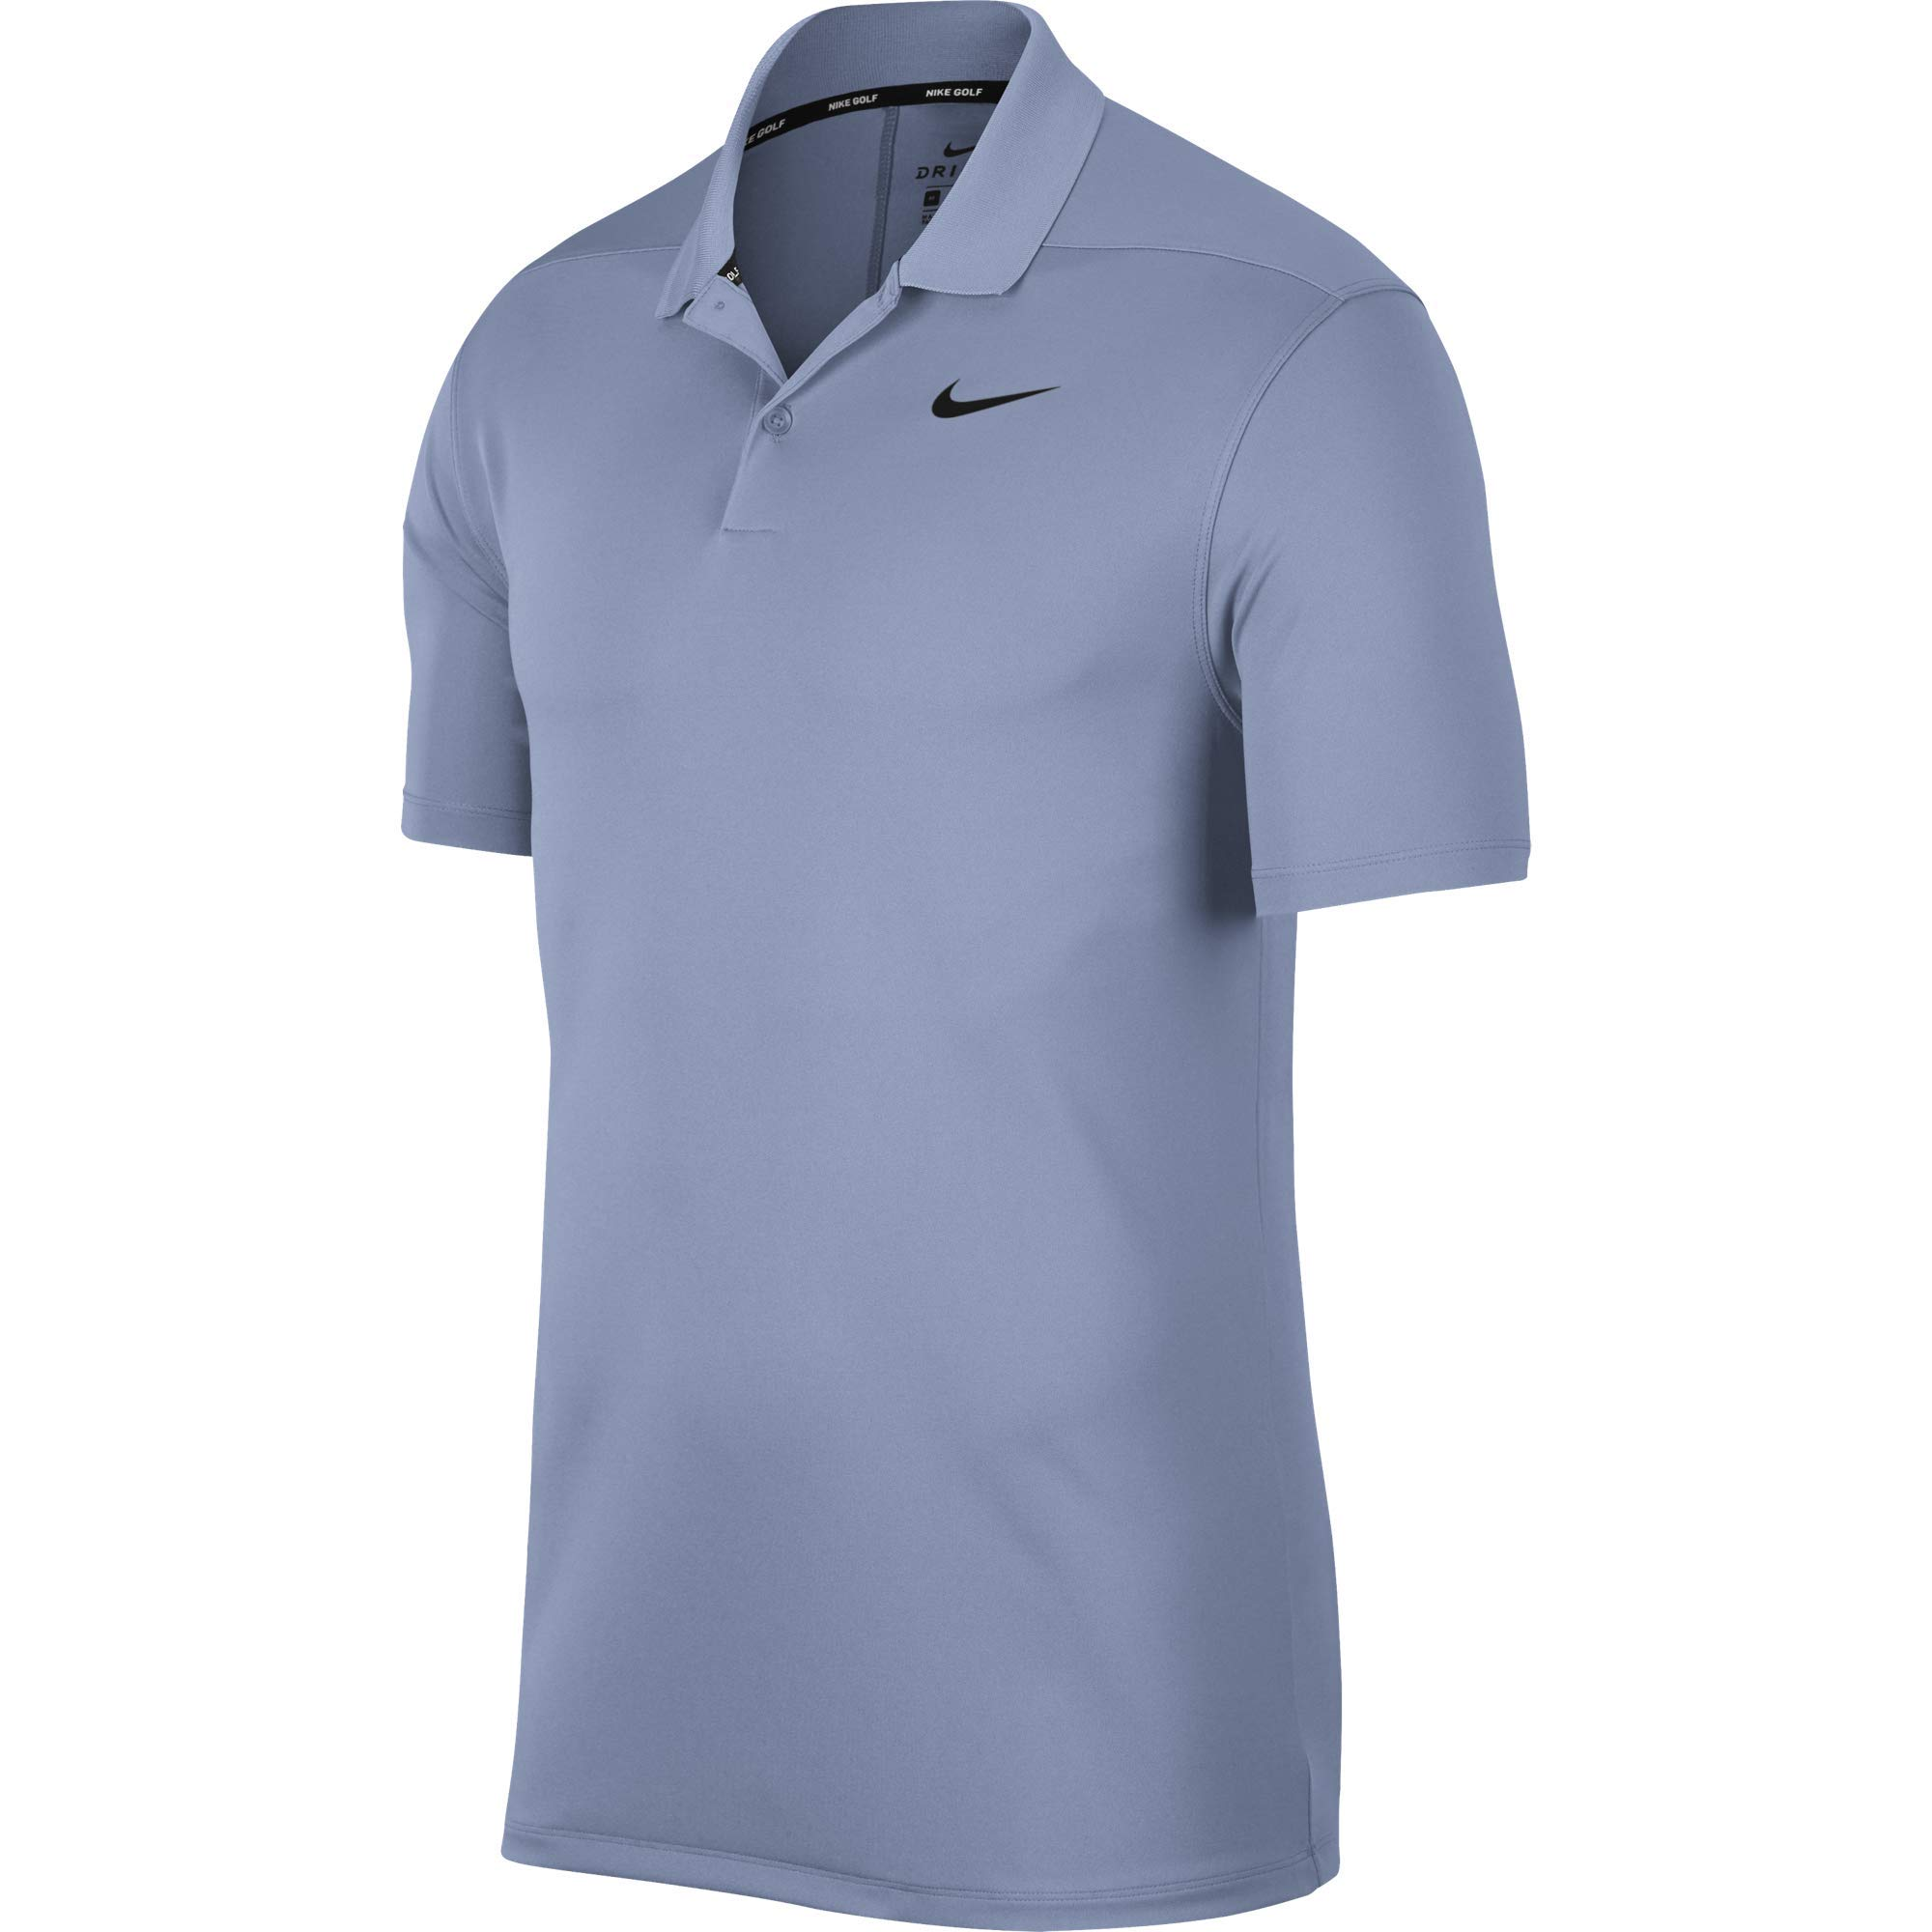 Nike Men's Dry Victory Polo Solid Left Chest, Indigo Fog/Black, Small by Nike